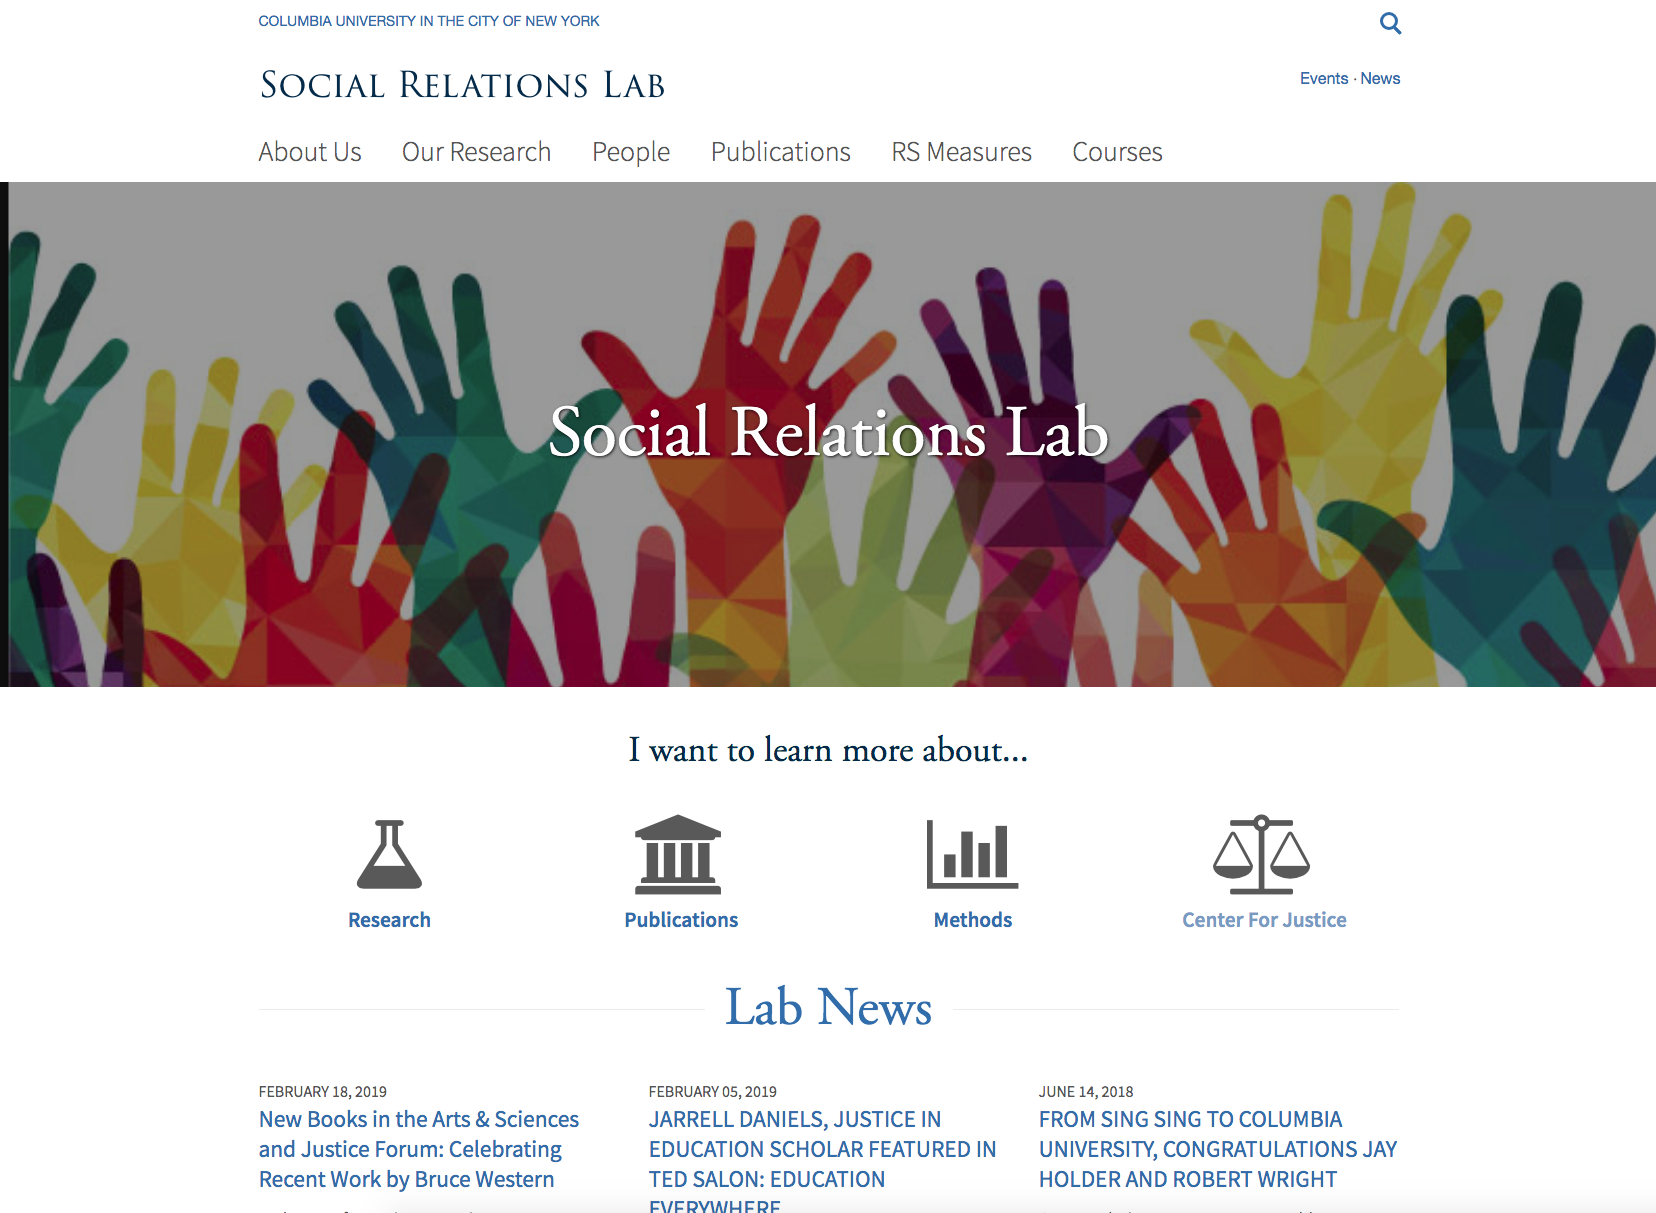 Downey: Social Relations Laboratory